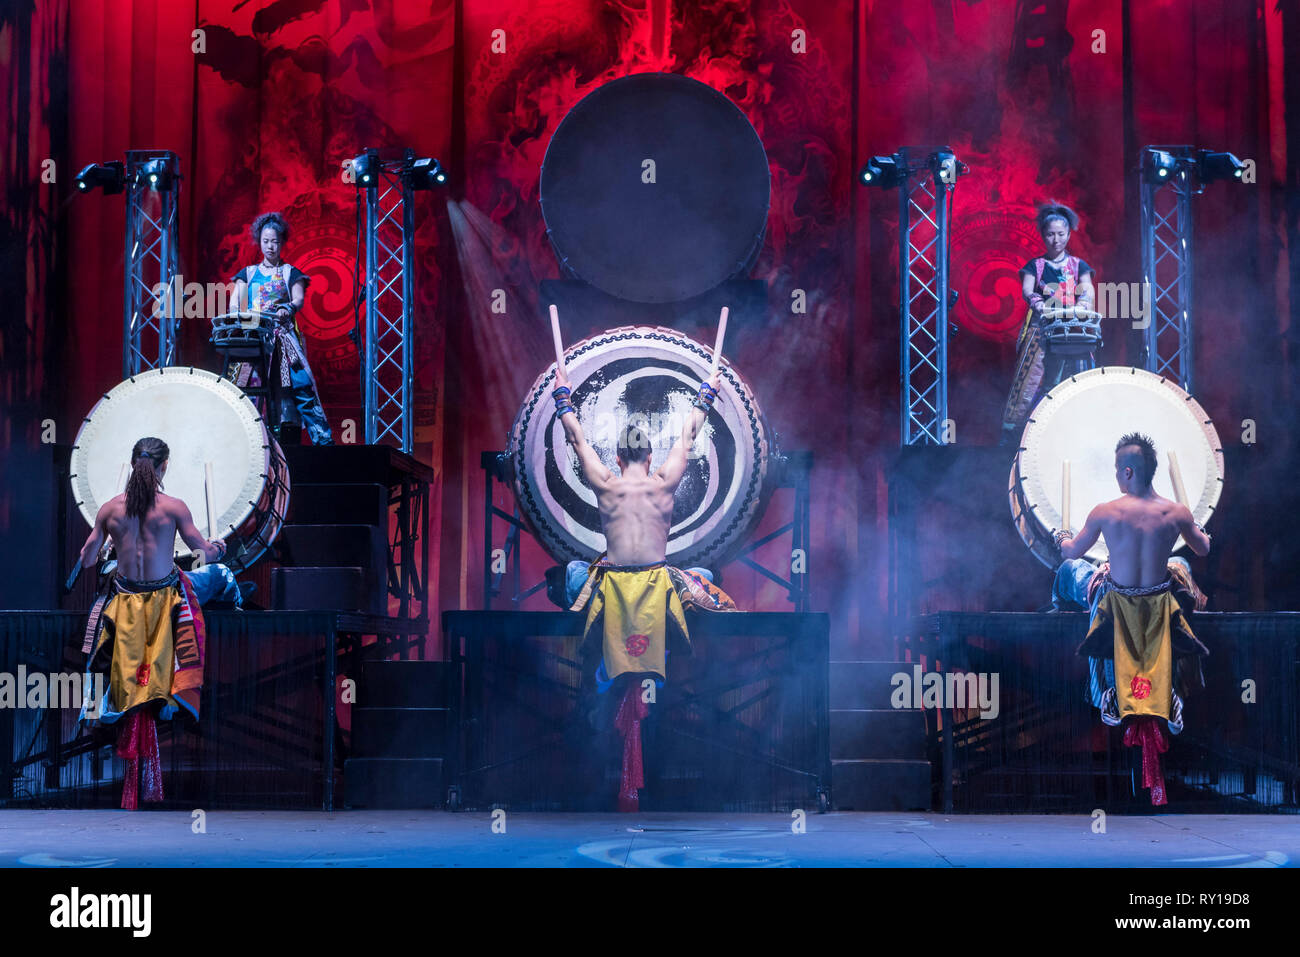 London, UK.  11 March 2019.  Preview by Yamato, the Japanese taiko drumming troupe, performing their newest work 'Passion'.  The show opens to the public at The Peacock theatre 12 to 31 March 2019.  Used in Shinto rituals, the Odaiko drums weigh over half a tonne each and are played by the troupe with ferocity and strength to produce a heart-thumping torrent of music.  Credit: Stephen Chung / Alamy Live News - Stock Image